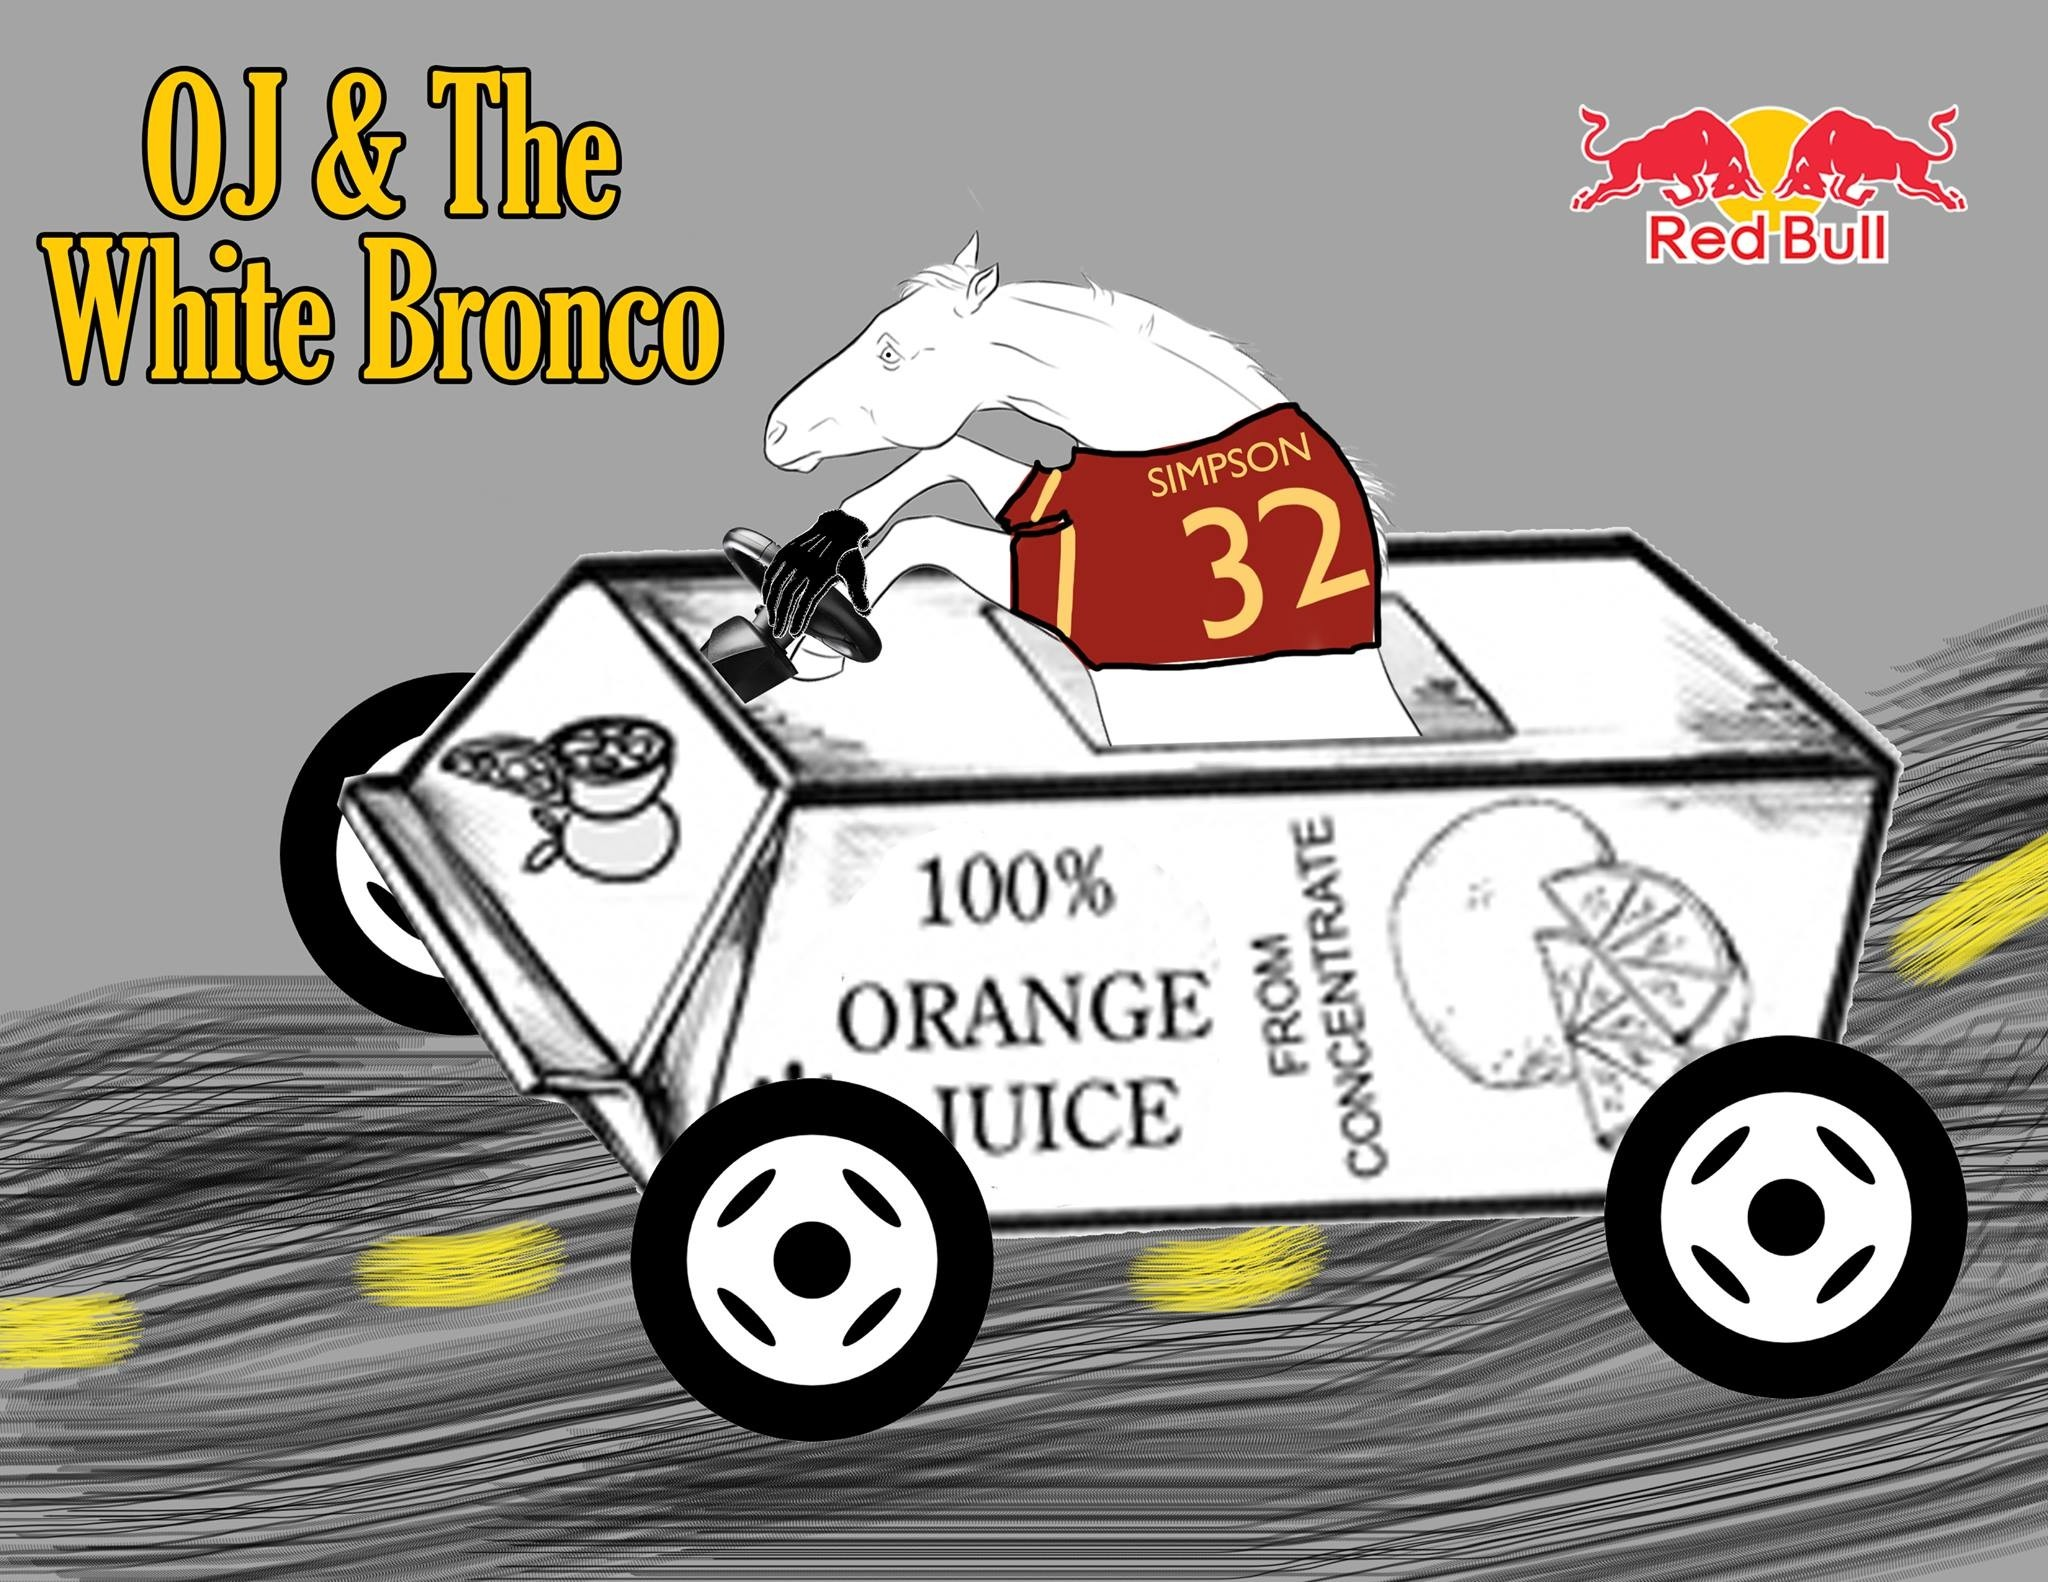 Red Bull Soapbox Race Returns to Los Angeles CA